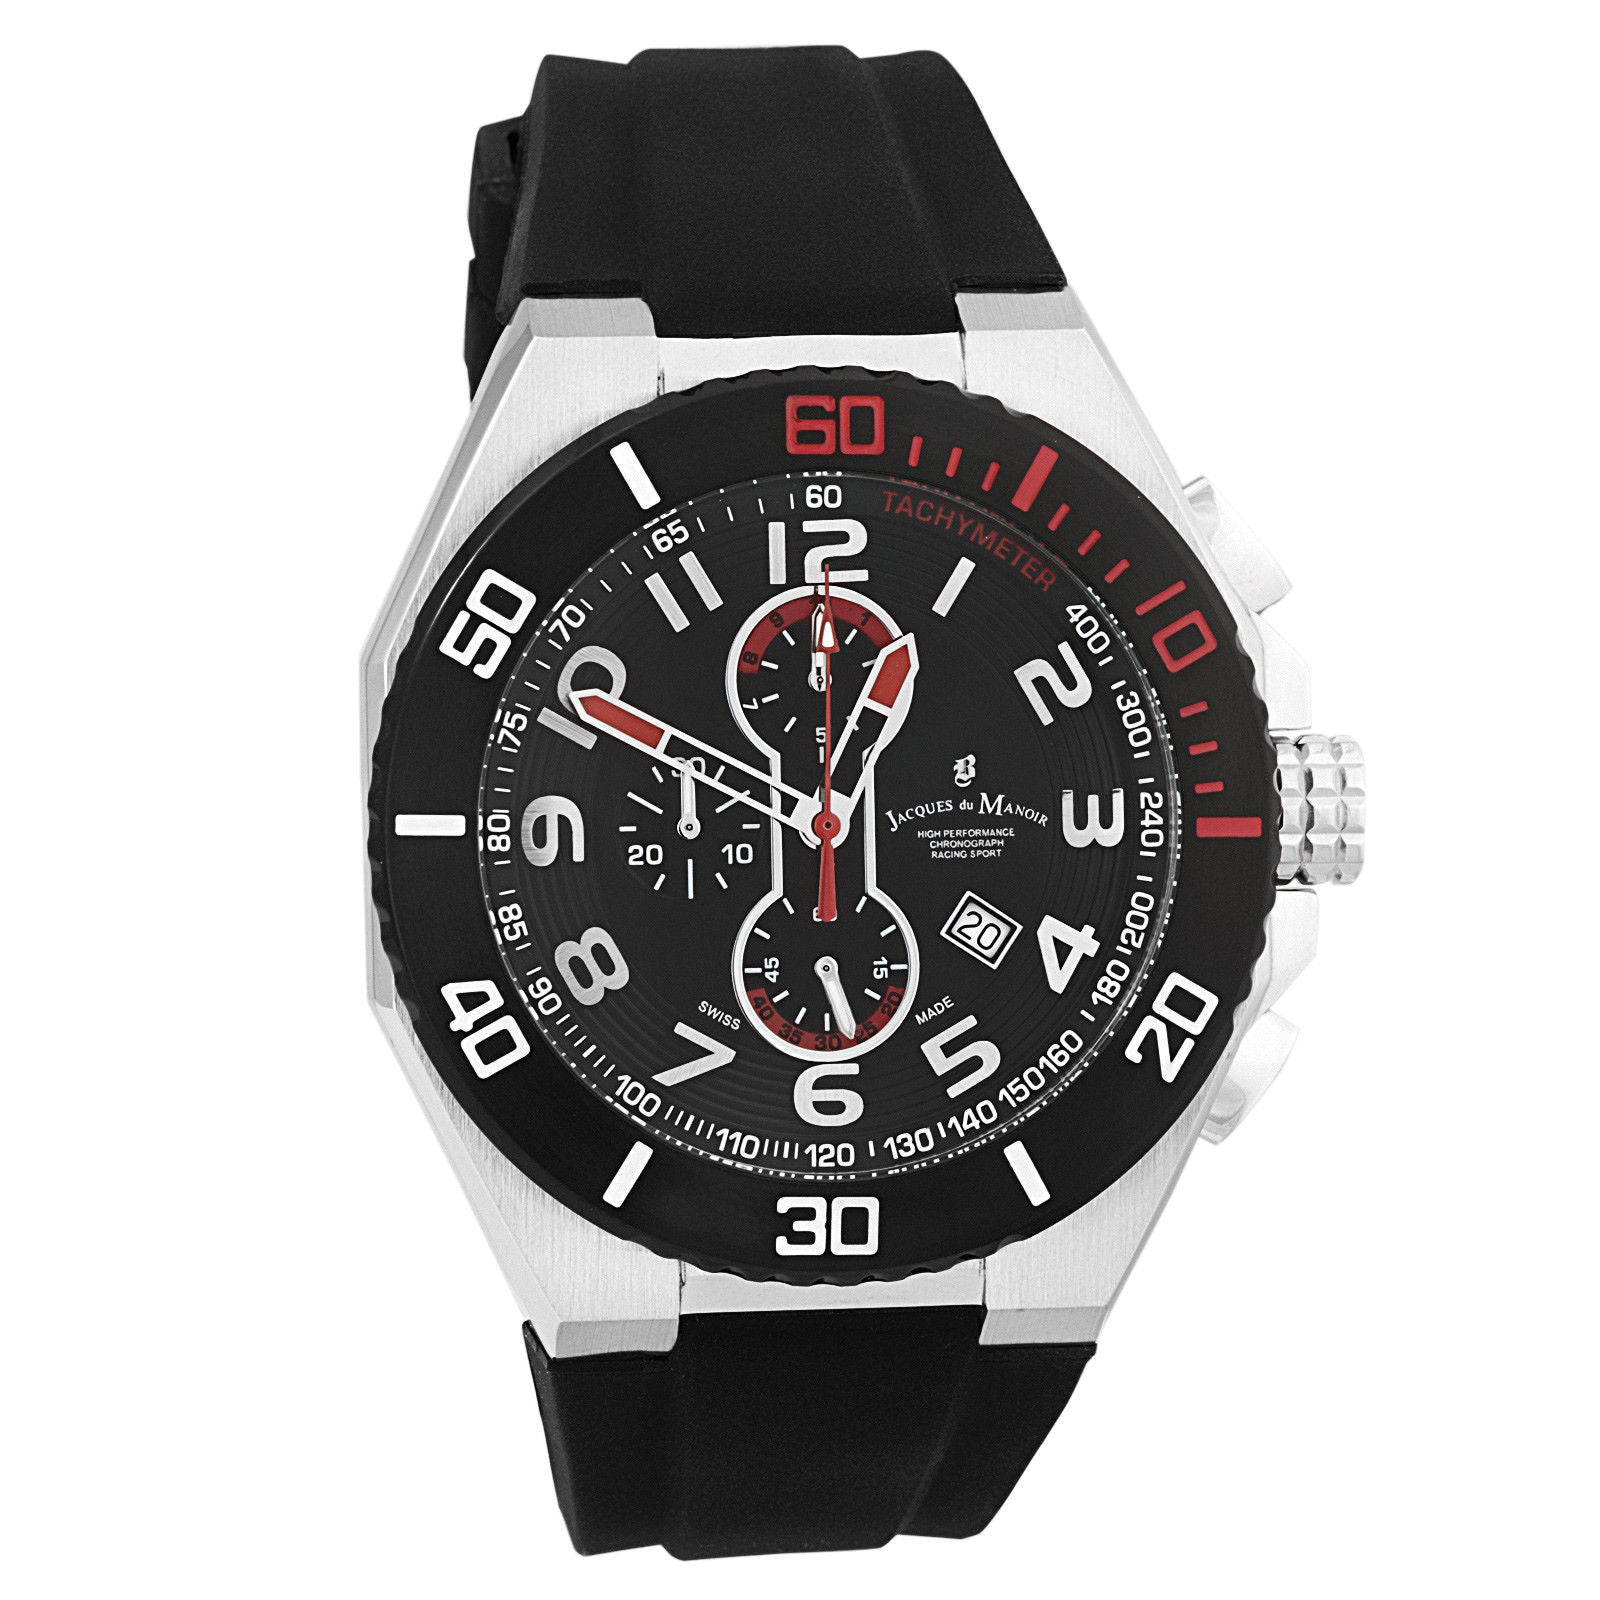 DU Manoir Men's Racing Sport Swiss Made Chronograph SP0.6 Watch-Luxury Watches | Mens And Ladies Luxury Watches | Upscale Time